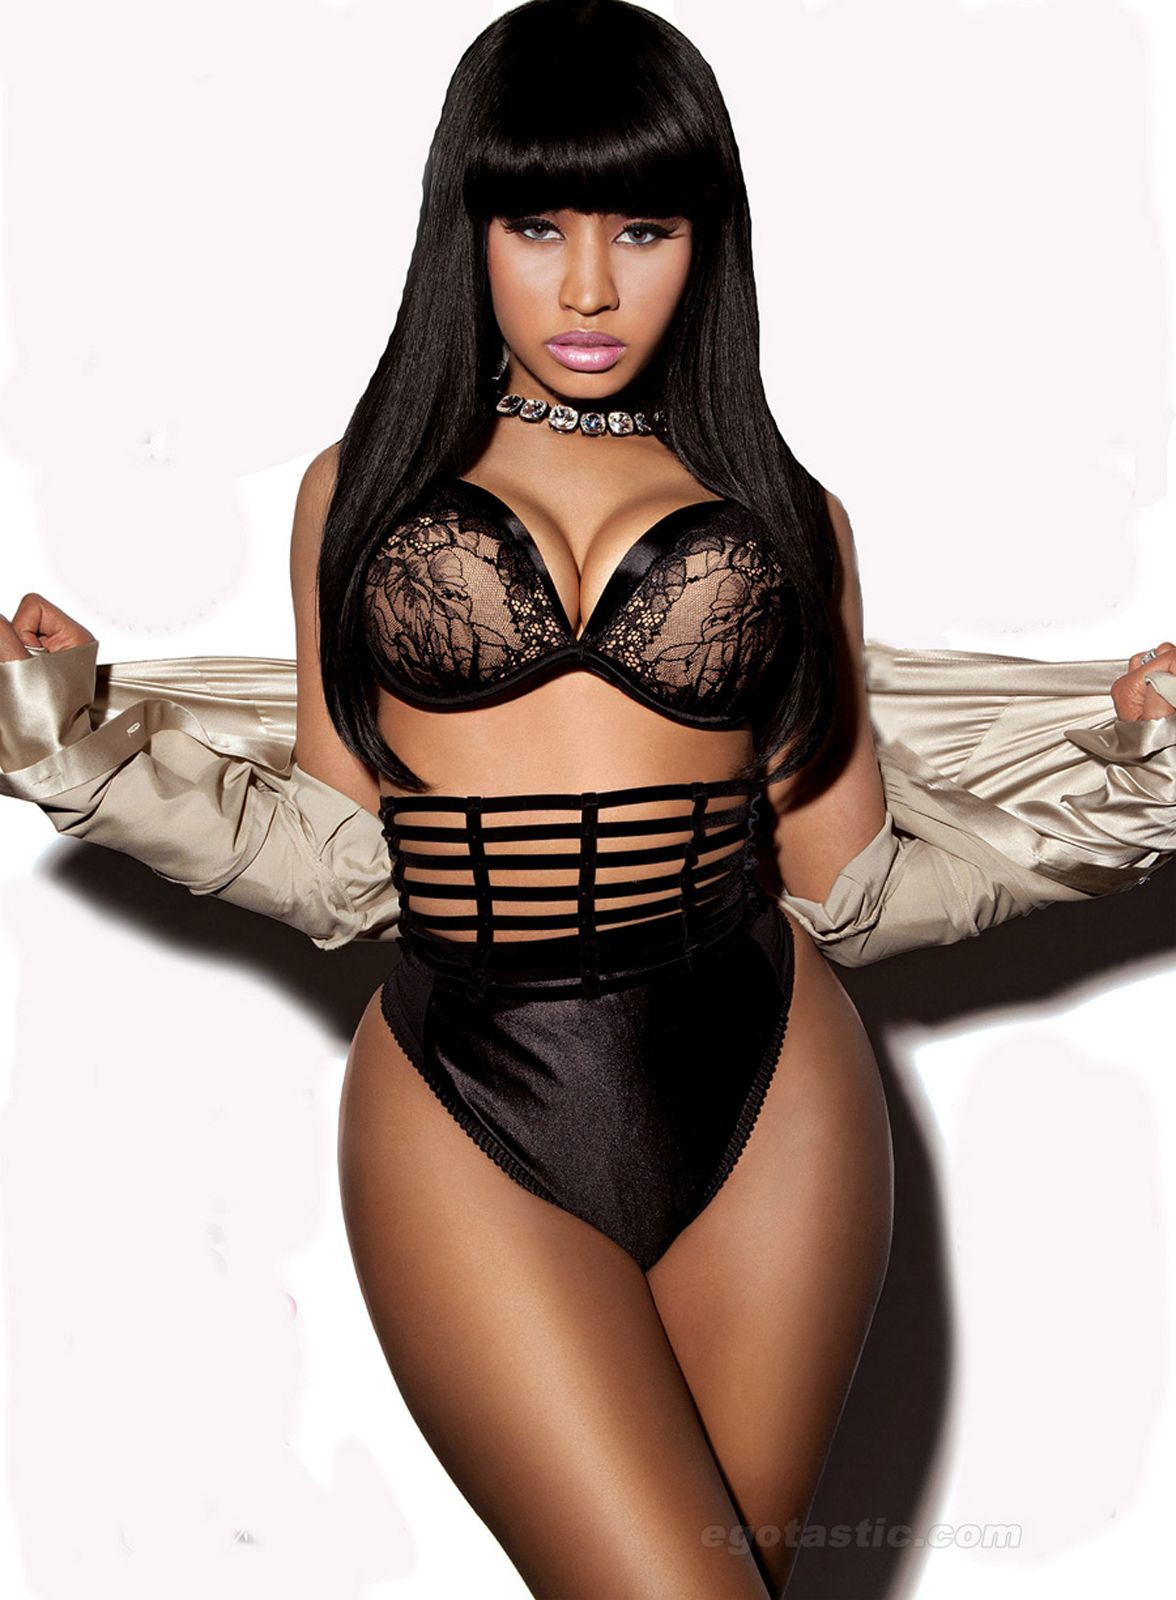 Nicki minaj tumblr pics sexy nicki minaj photo shoot harajuku nicki minaj tumblr pics sexy nicki minaj photo shoot voltagebd Image collections